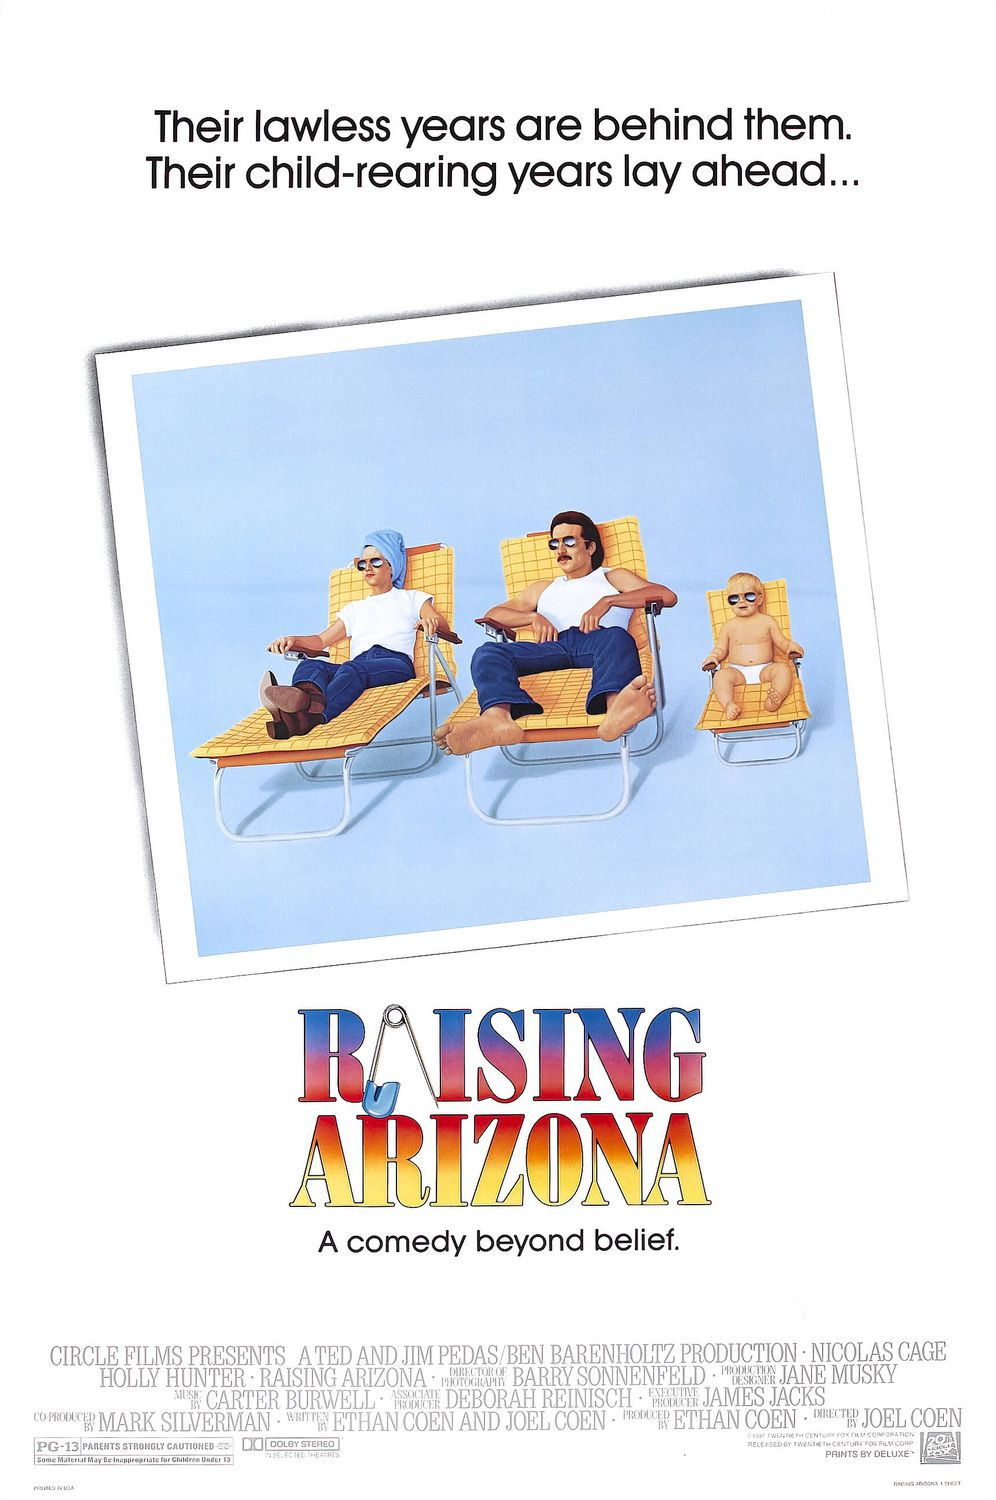 Raising Arizona (1987) - Directed by: Ethan & Joel CoenStarring: Nicolas Cage, Holly Hunter, John GoodmanRated: PG-13Running Time: 1h 34mTMM Score: 4.5 out of 5STRENGTHS: Acting, Characters, Story, AestheticWEAKNESSES: Pacing